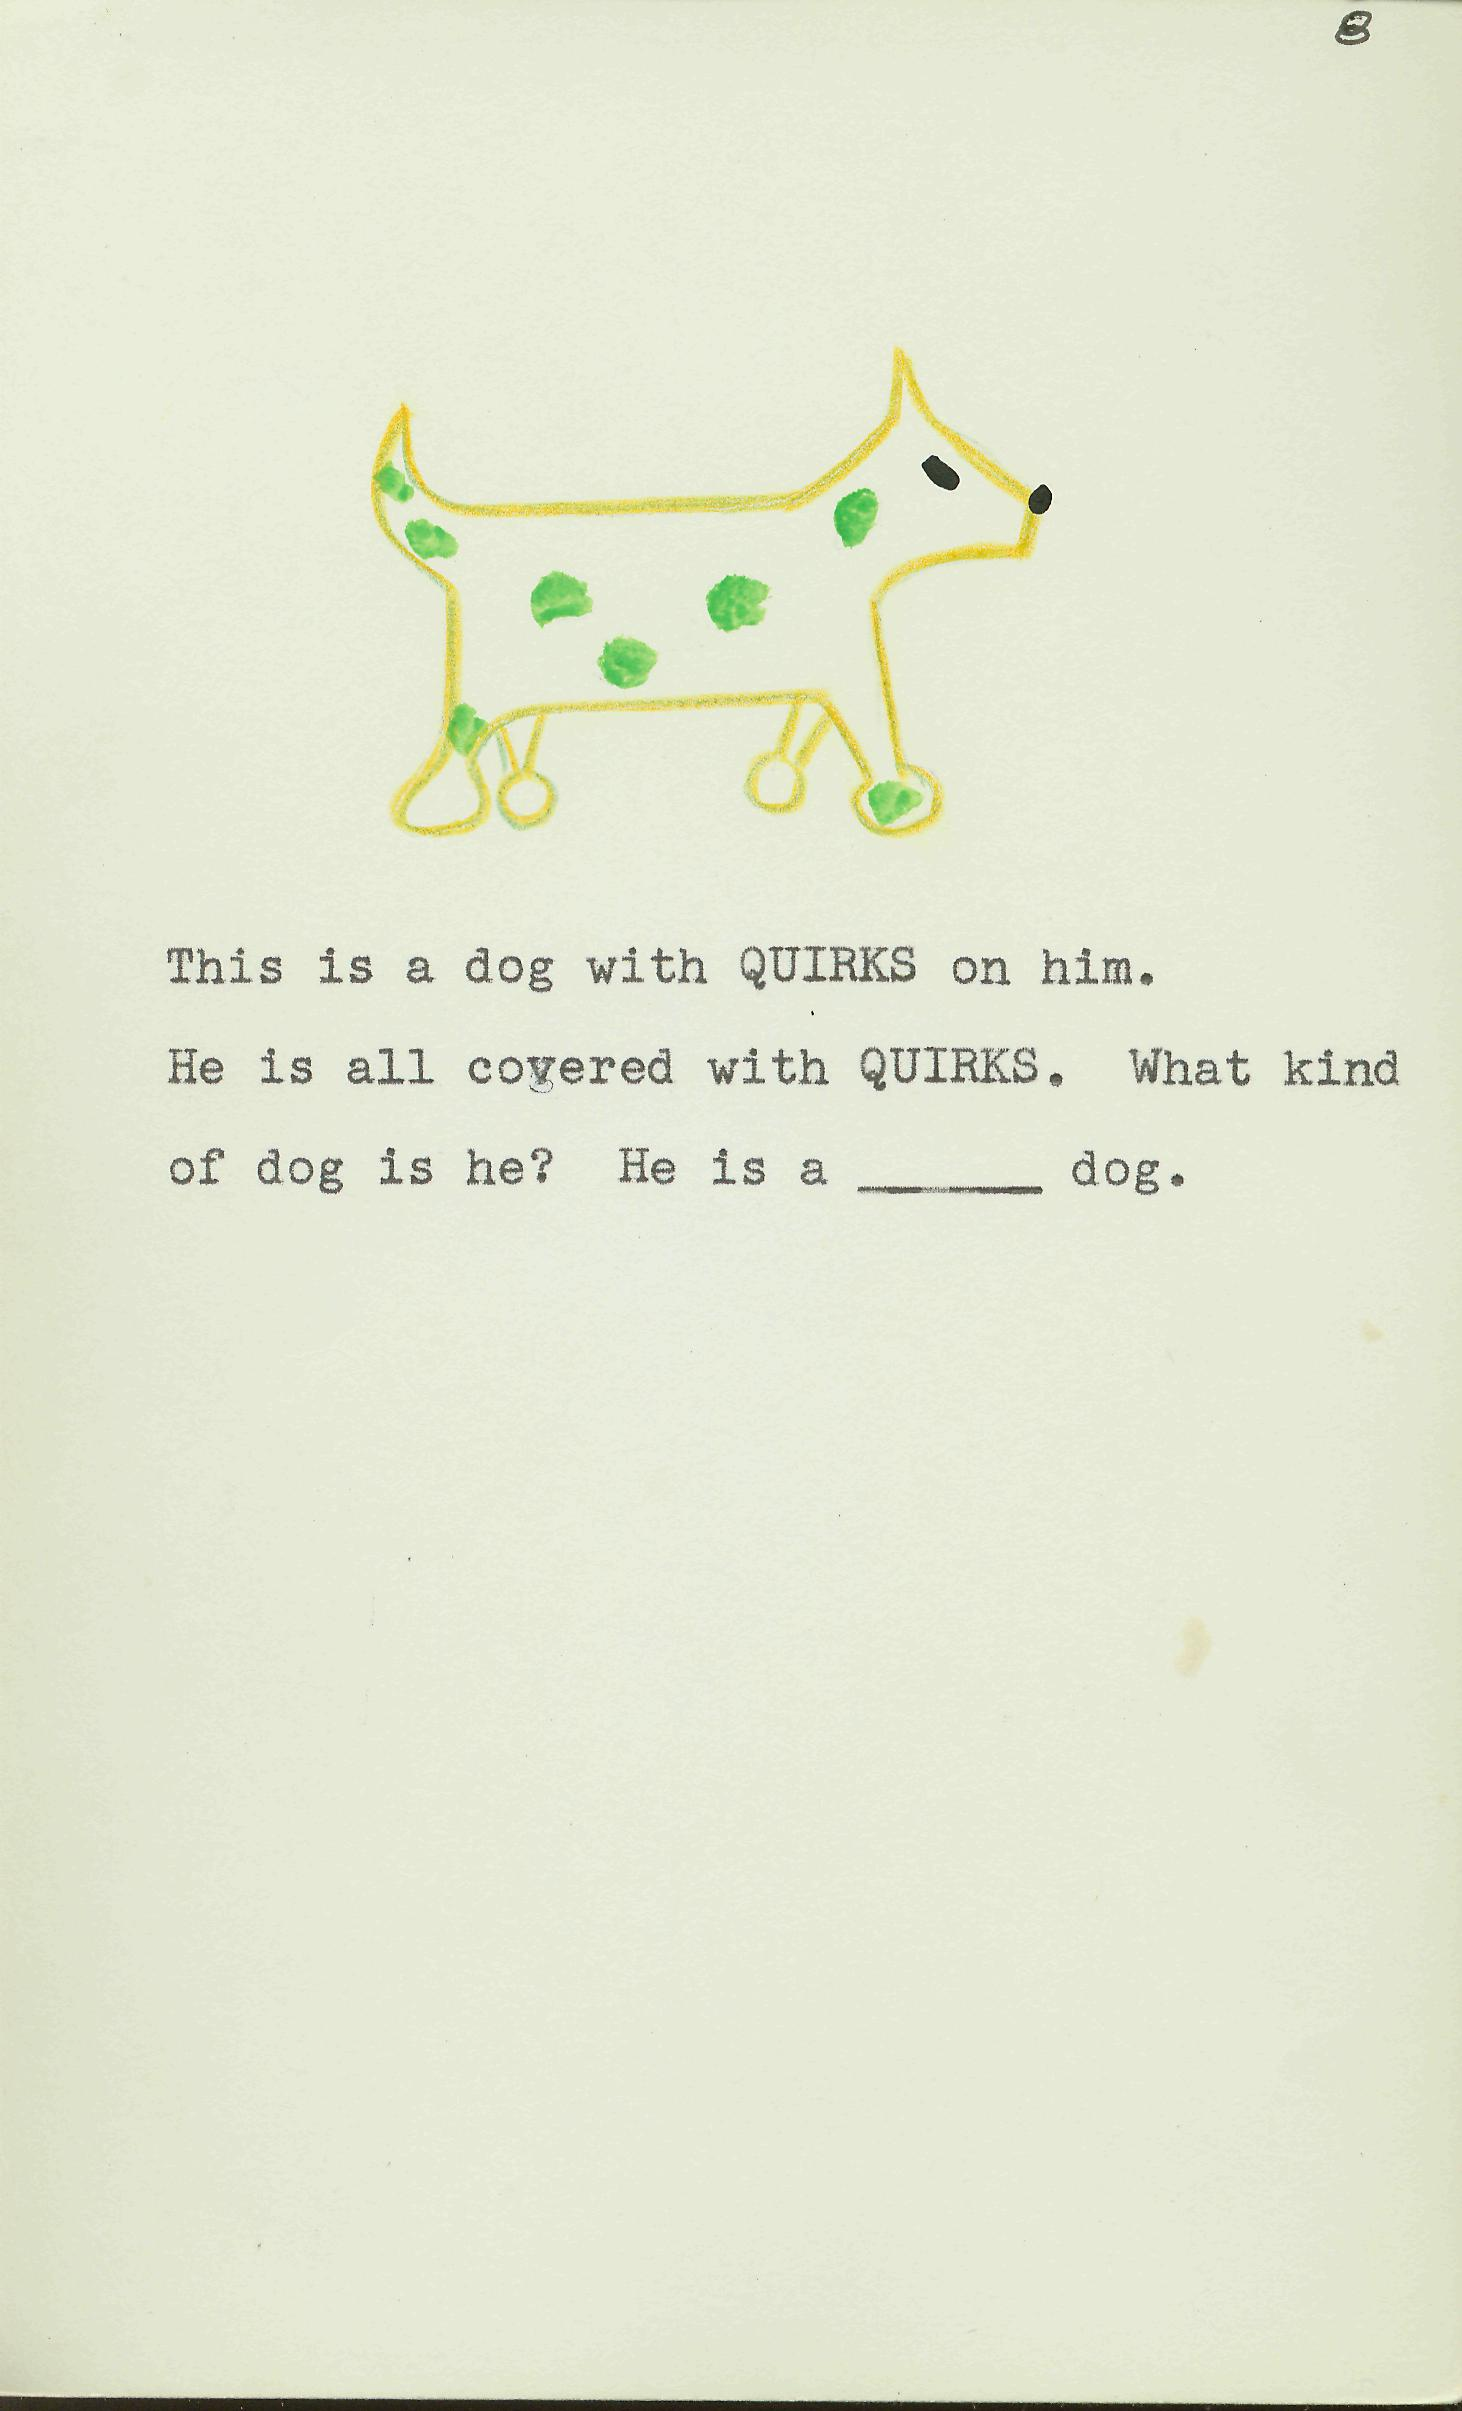 wug test - image 8 - this is a dog with quirks